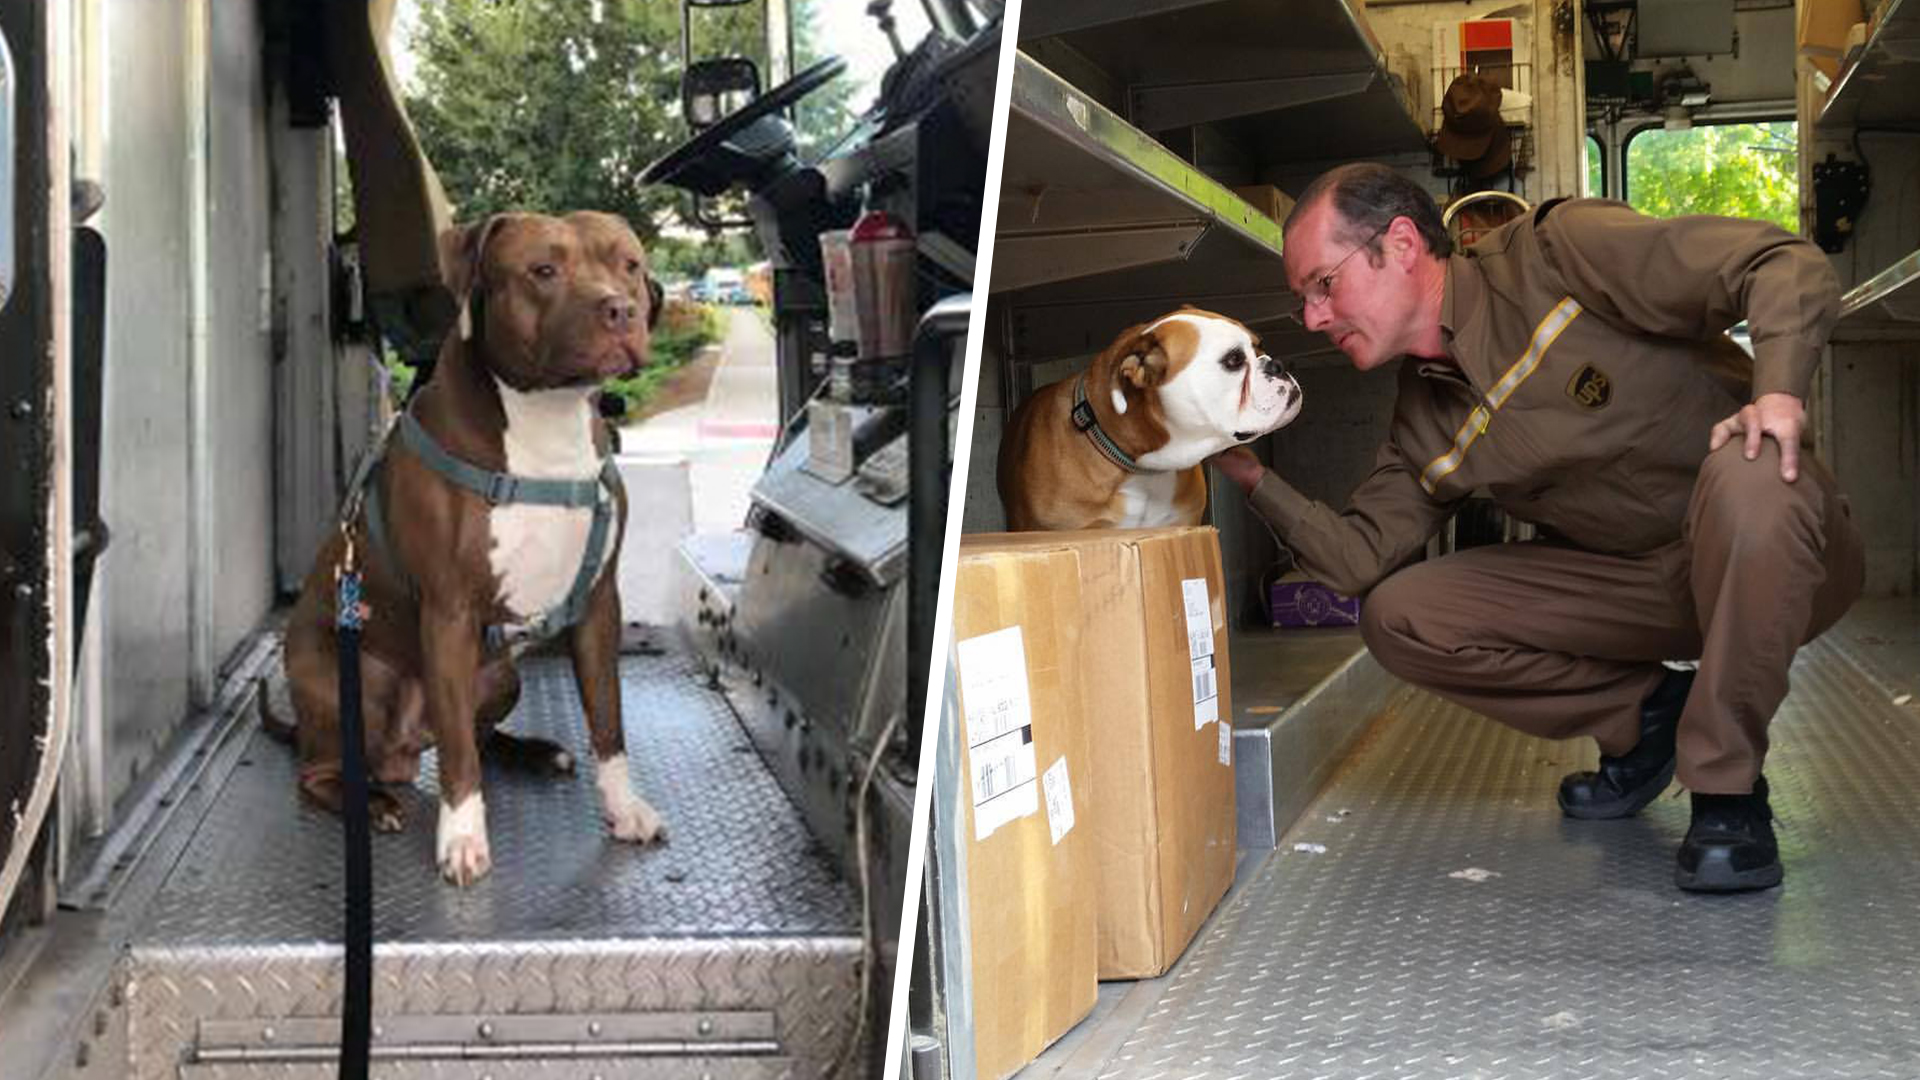 See the Facebook page dedicated to the dogs UPS drivers meet on their routes